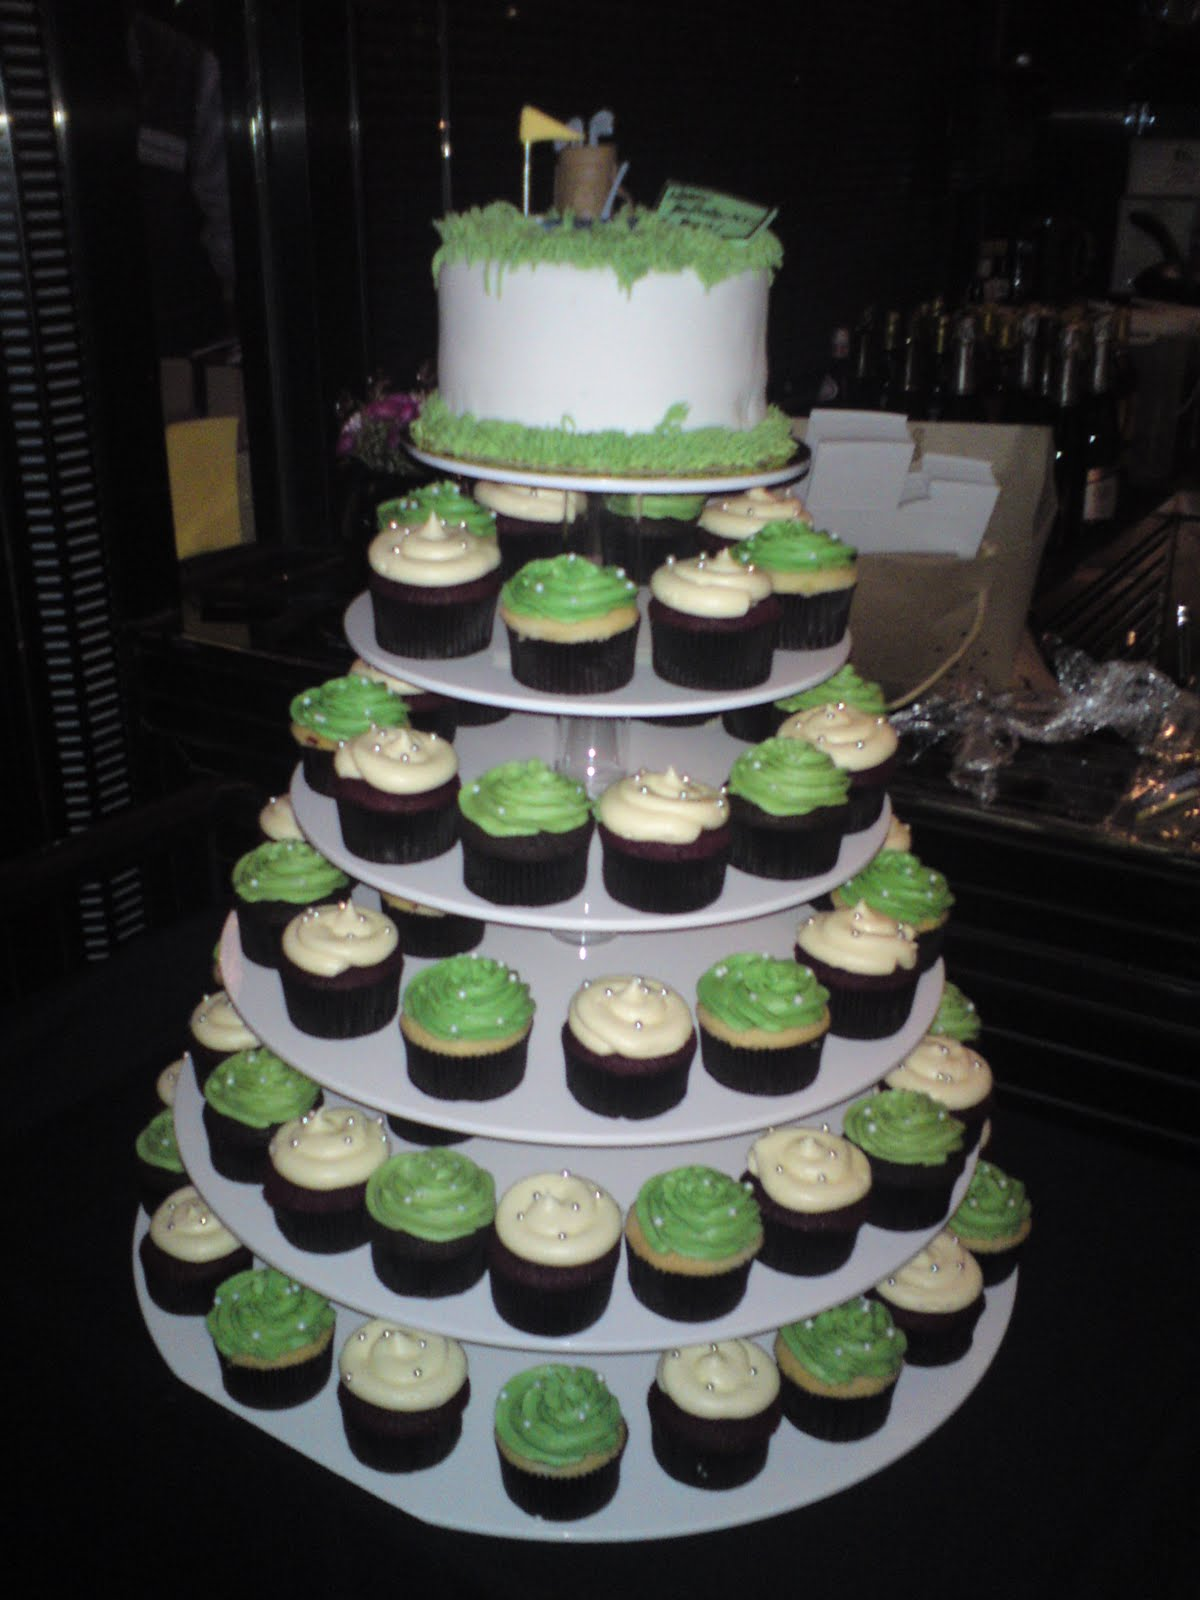 Sift Golf themed cupcake tower